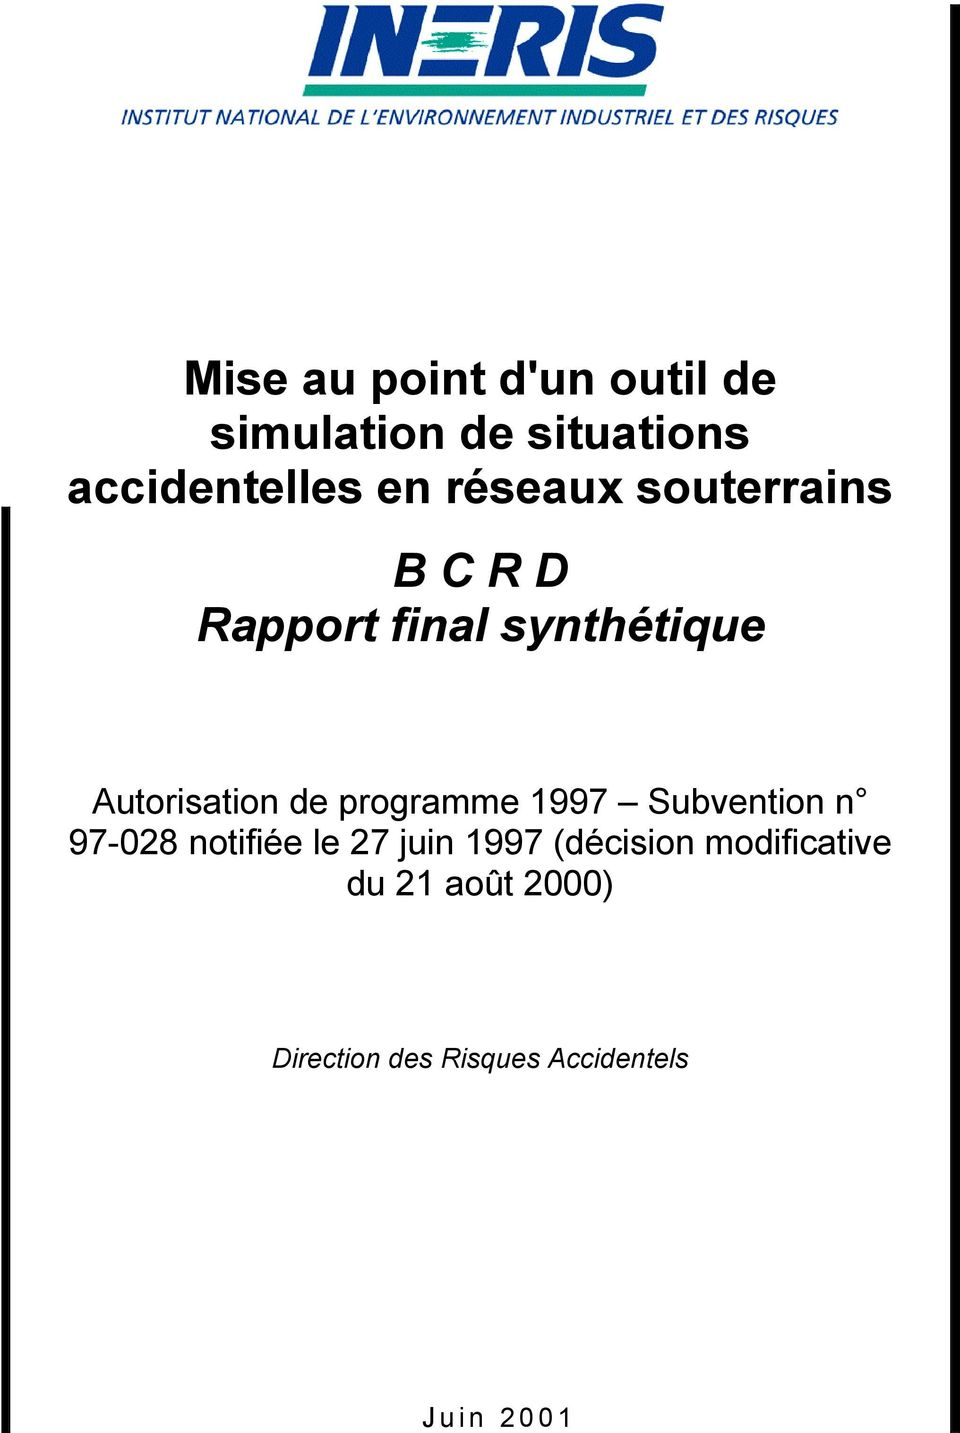 programme 1997 Subvention n 97-028 notifiée le 27 juin 1997 (décision